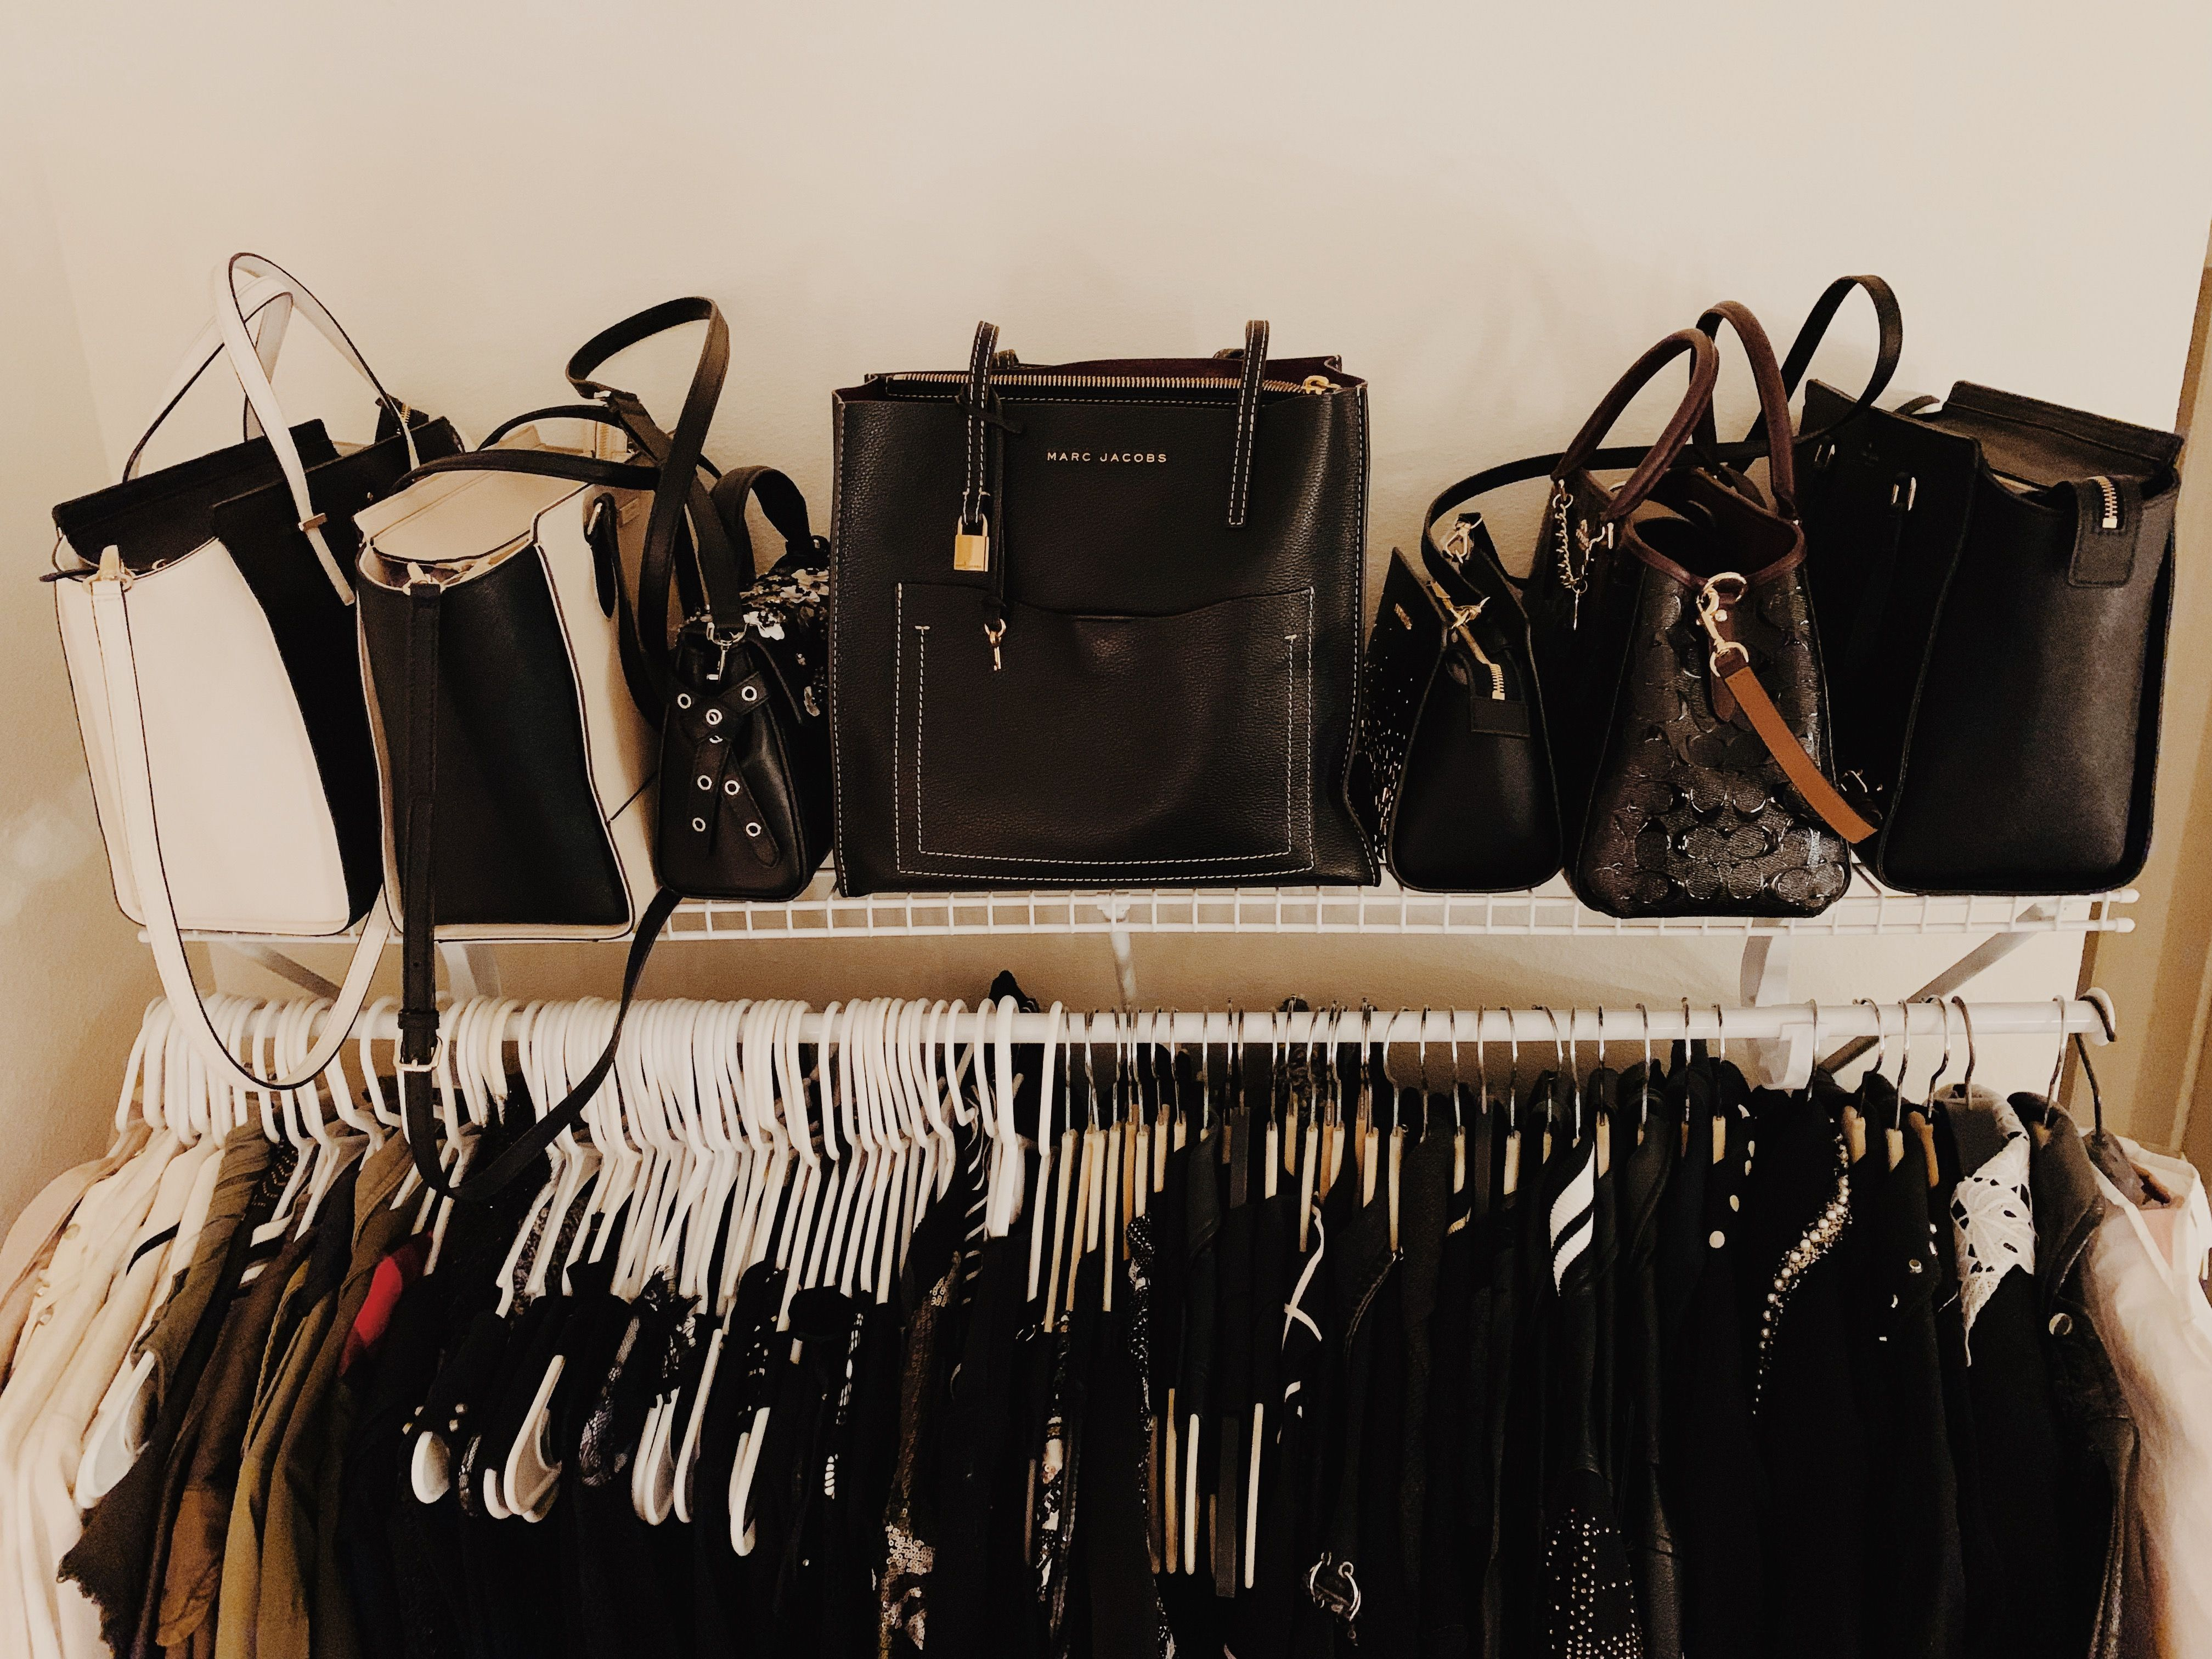 My trusty Marc Jacobs tote sits front and center in my closet.